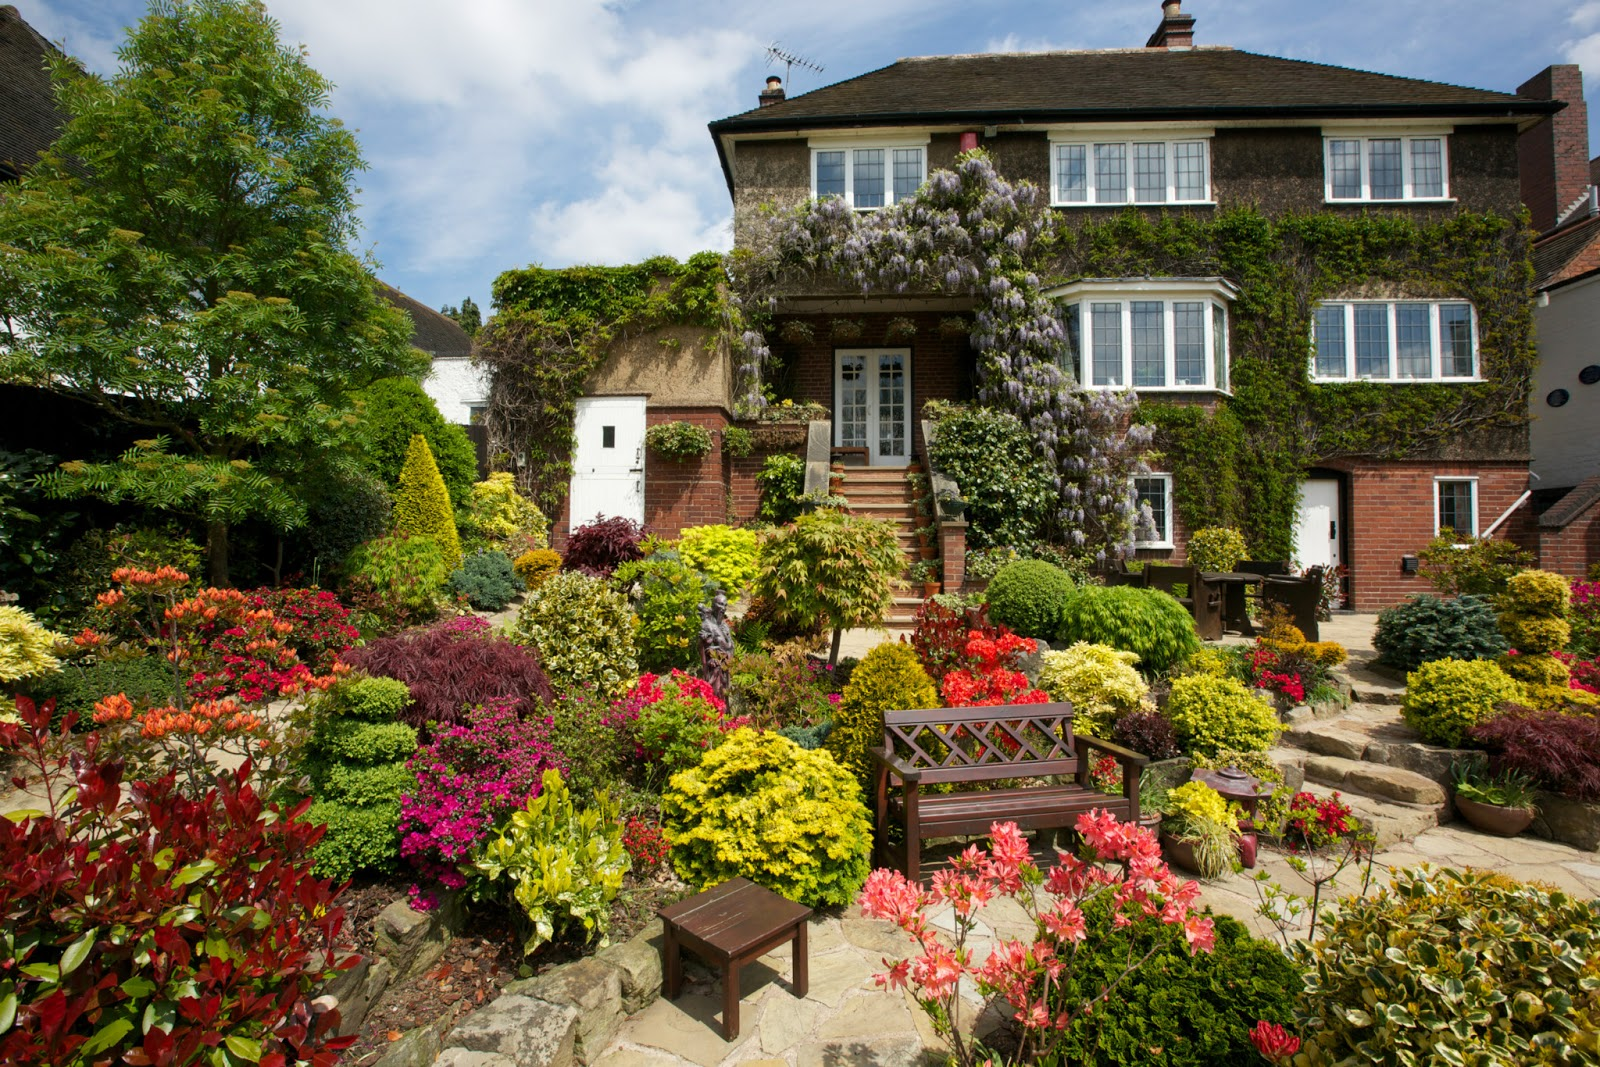 Drelis gardens four seasons garden the most beautiful home gardens in the world Beautiful homes and gardens